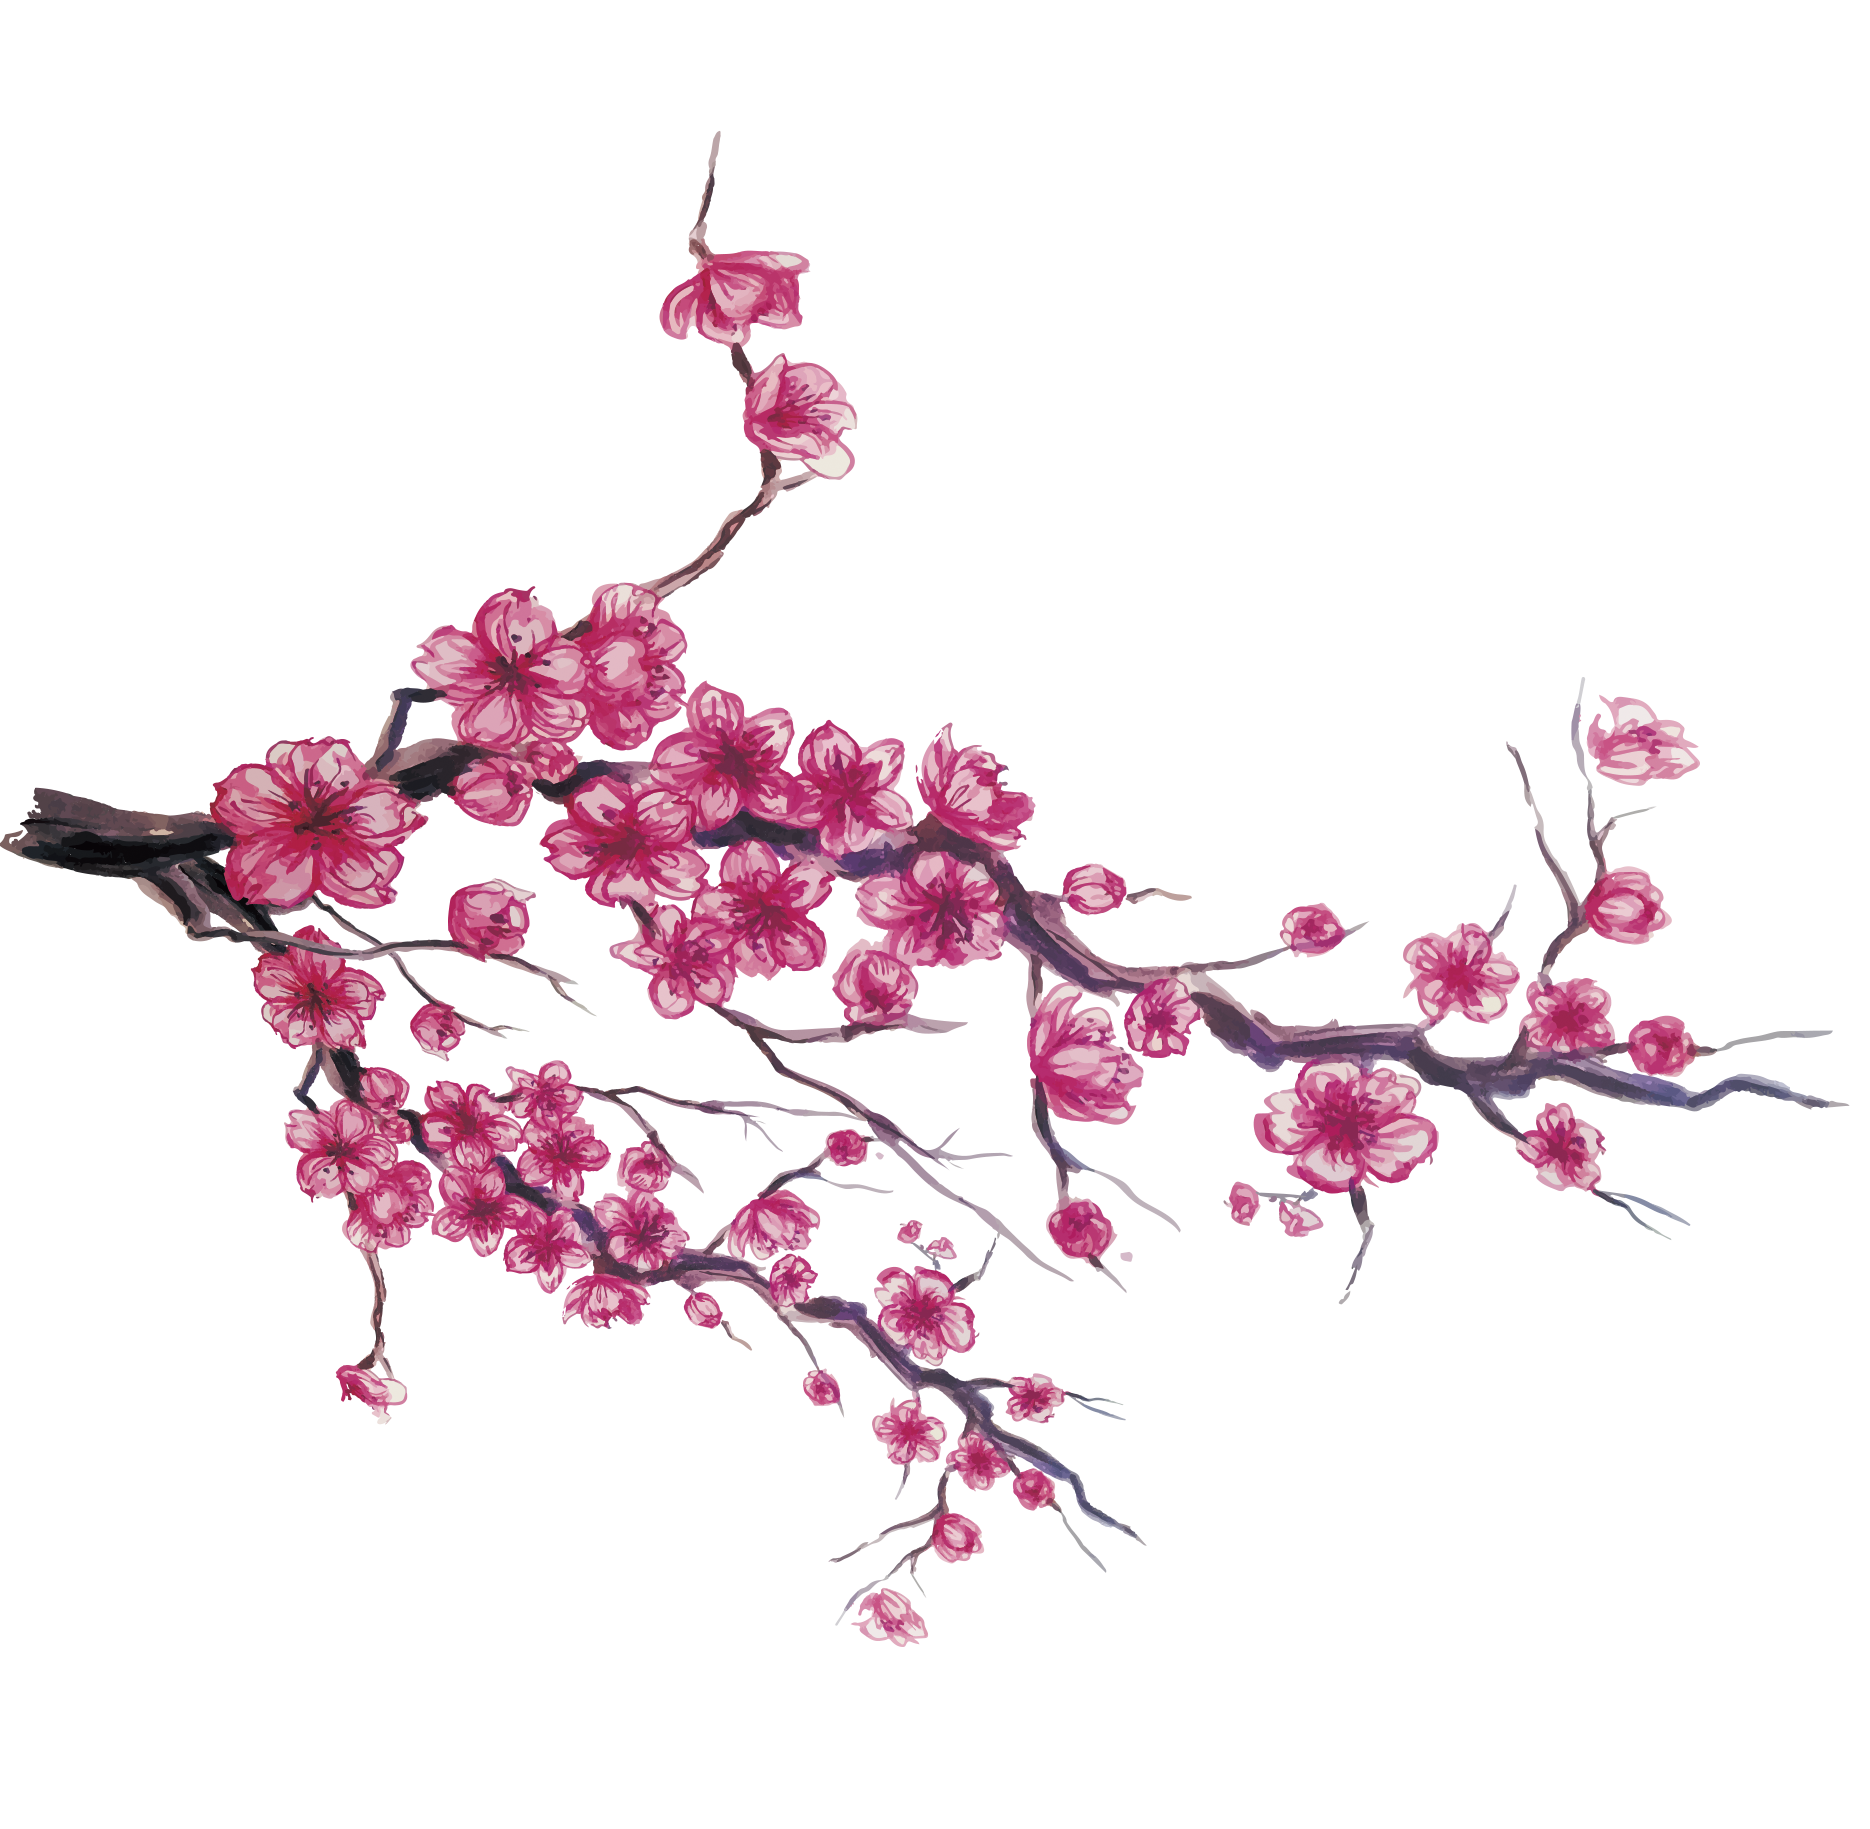 Drawing japan cherry blossom. Download hand painted japanese